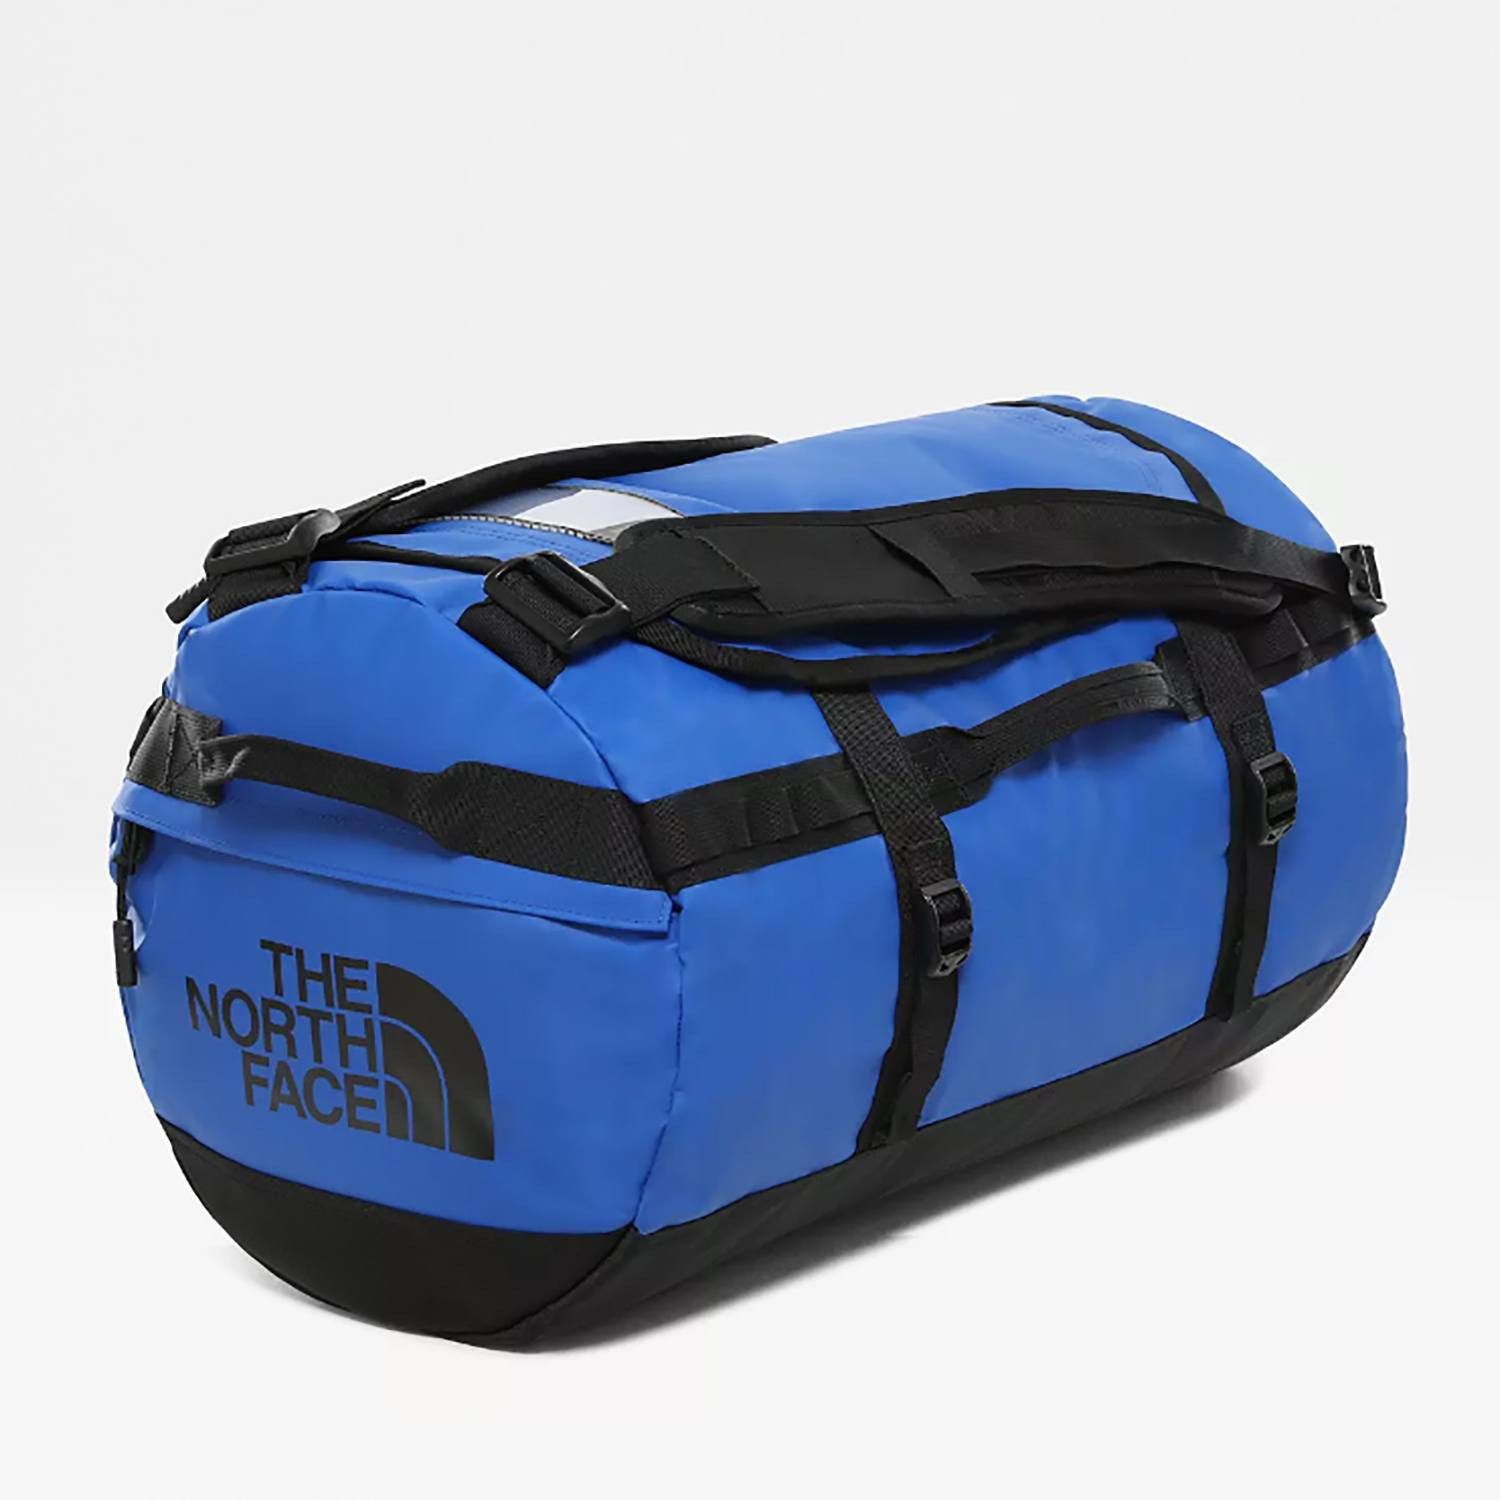 THE NORTH FACE BASE CAMP DUFFEL - S (9000036616_41113)